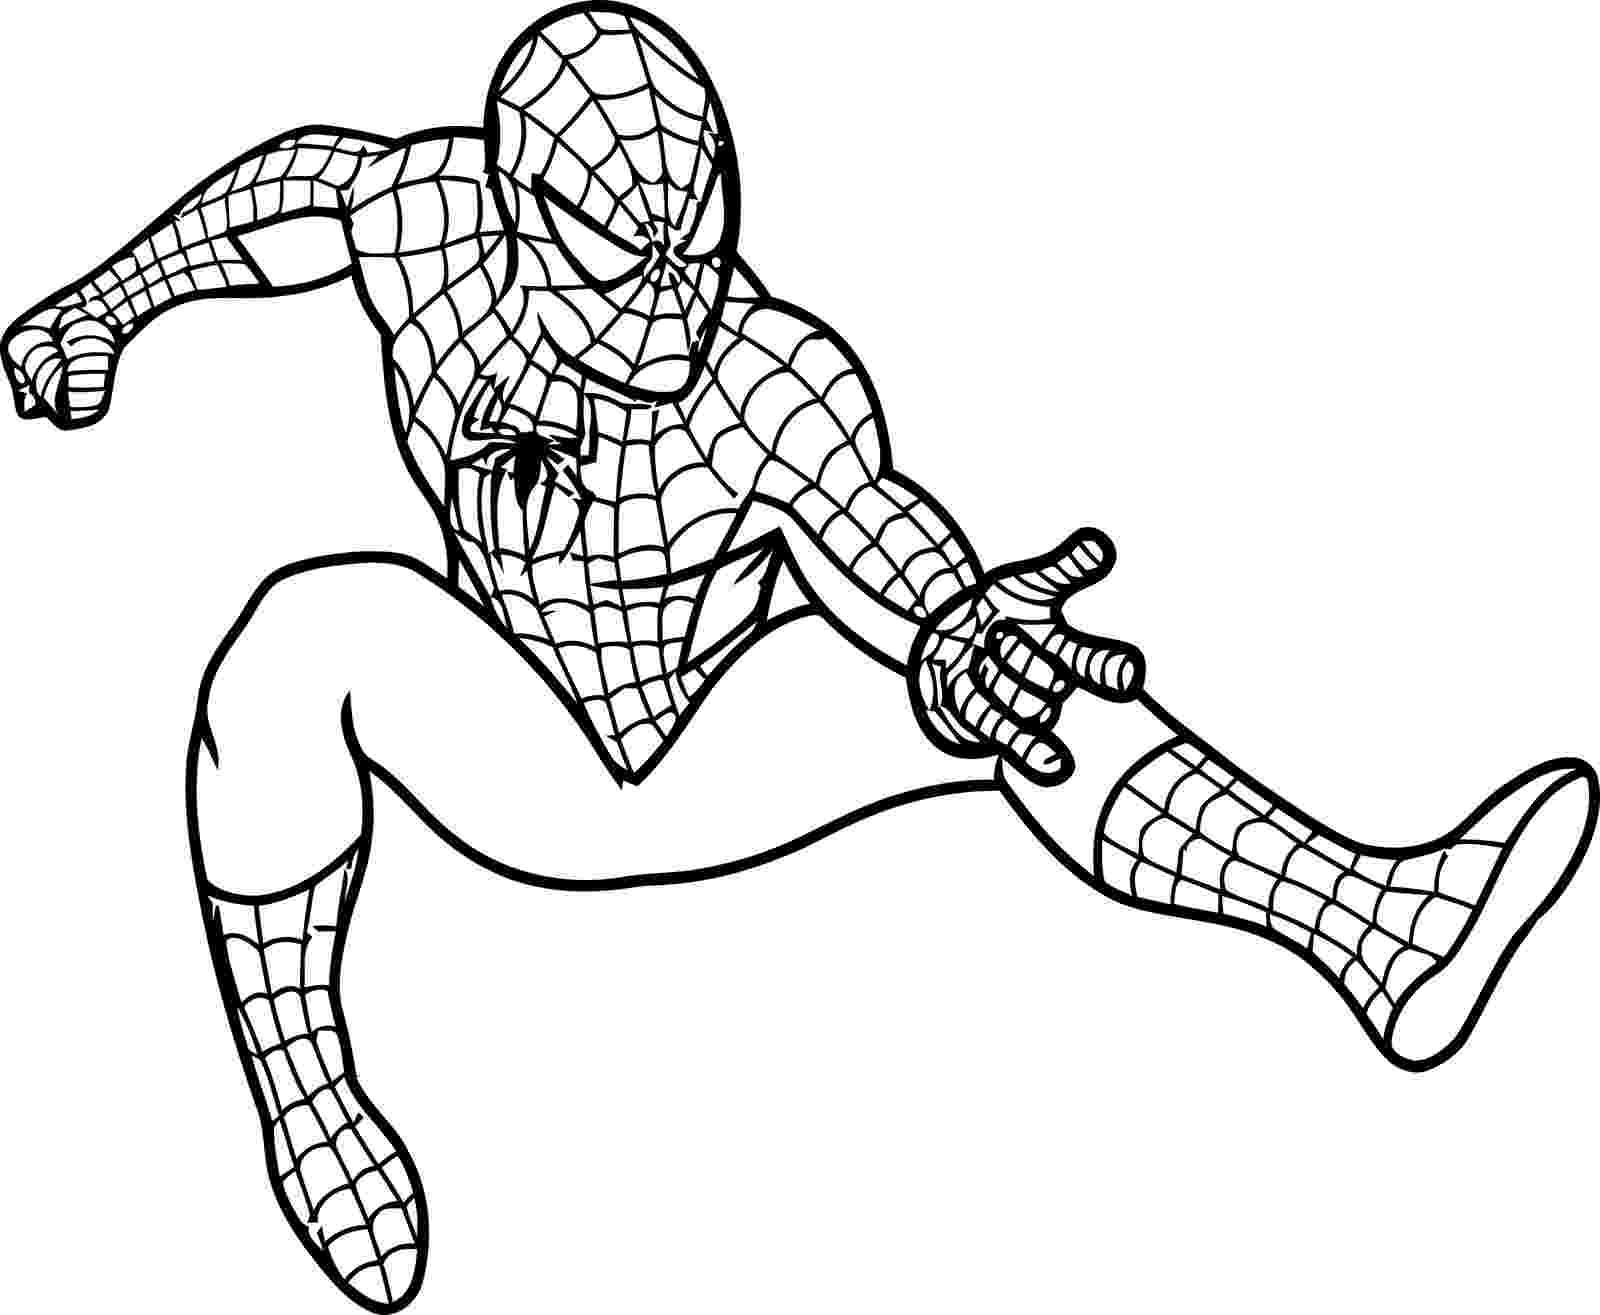 spiderman printout coloring spiderman pages coloring print out pages spiderman printout